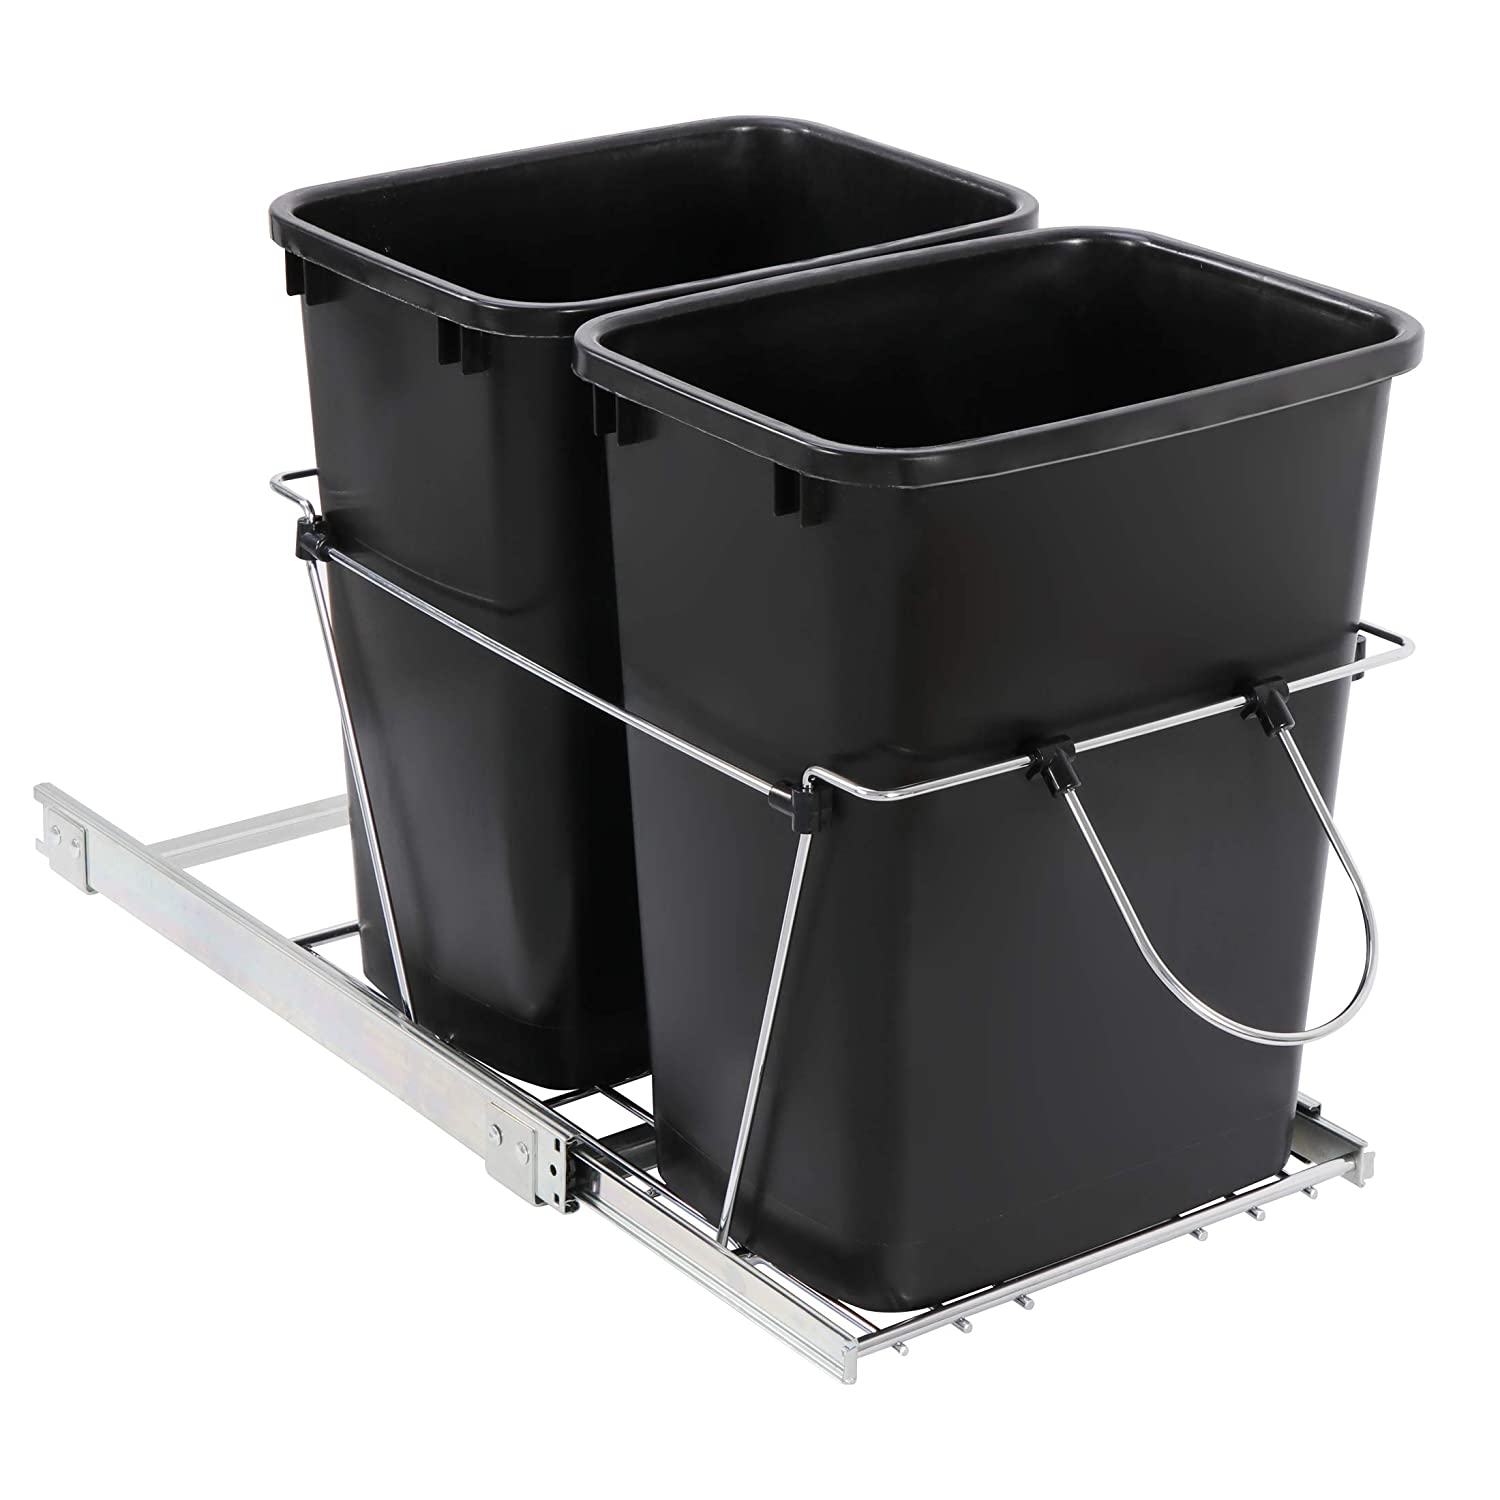 SUPER Limited price sale DEAL Easy-to-use Double Pullout Trash Can Counter Under Quart 35 Slidi